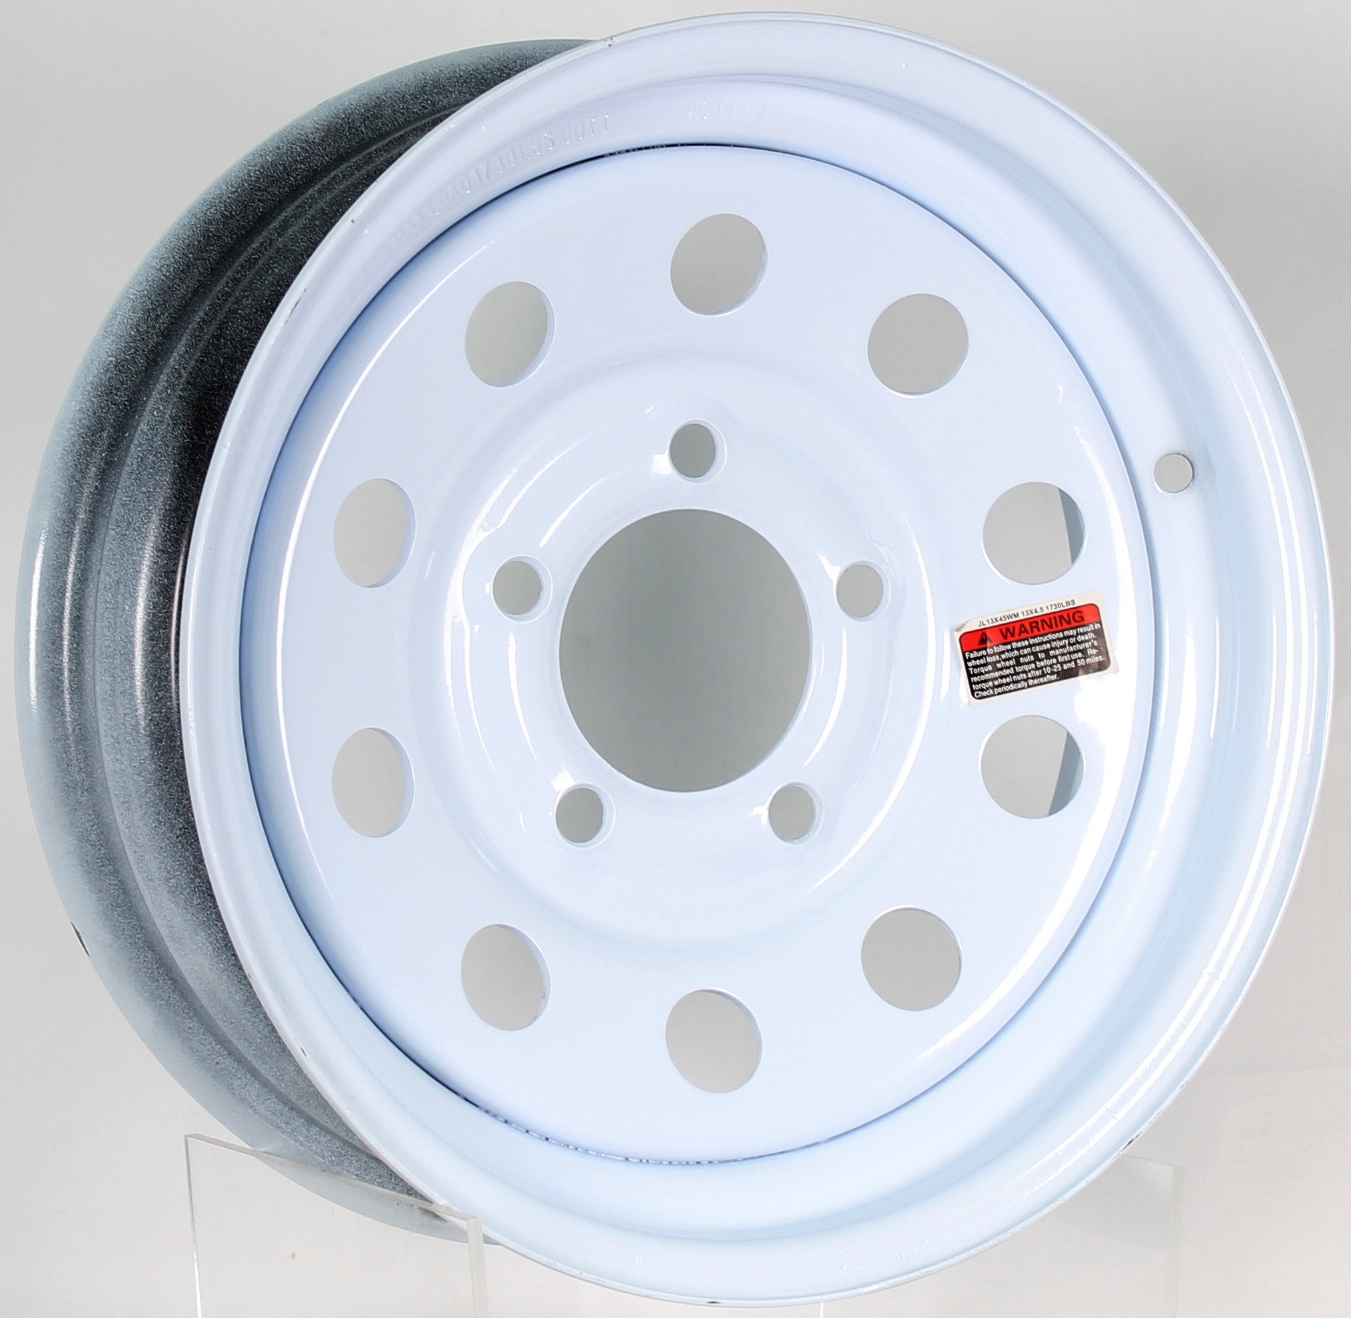 13x4.5 5-4.5 White Mod Steel Trailer Wheel Image